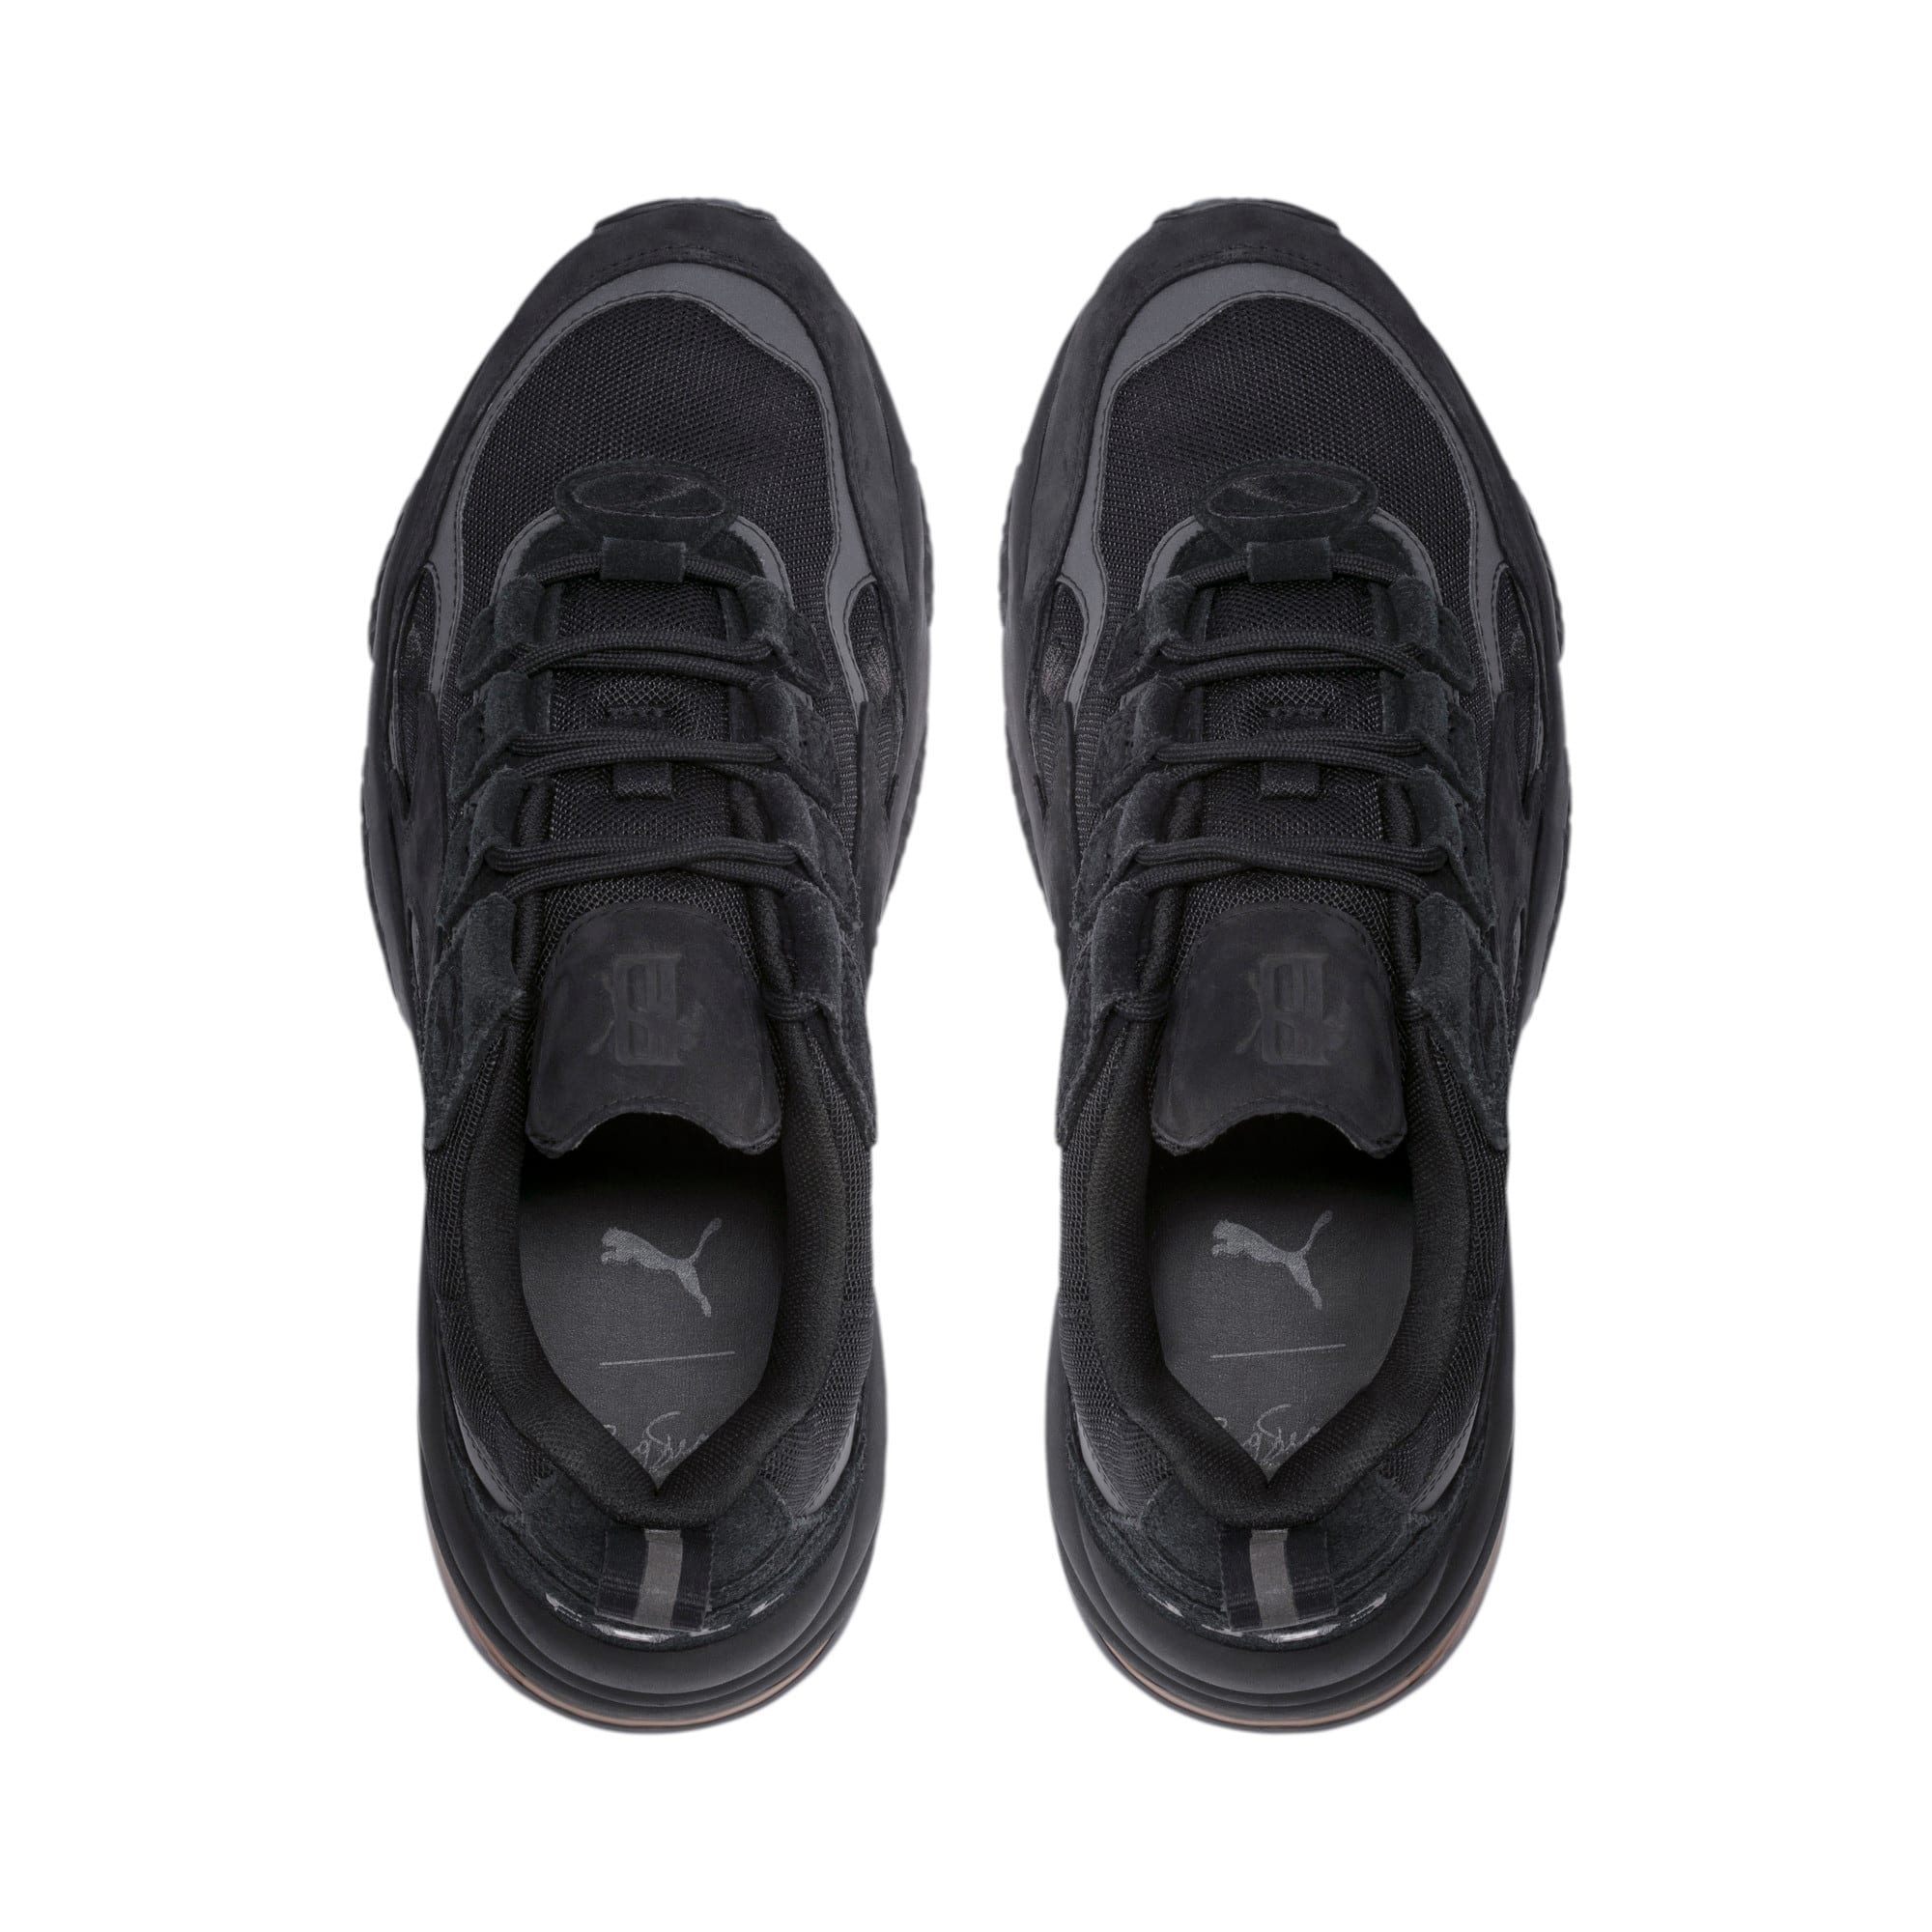 Thumbnail 6 of CELL Venom Blackout Sneakers, Puma Black-Puma Black, medium